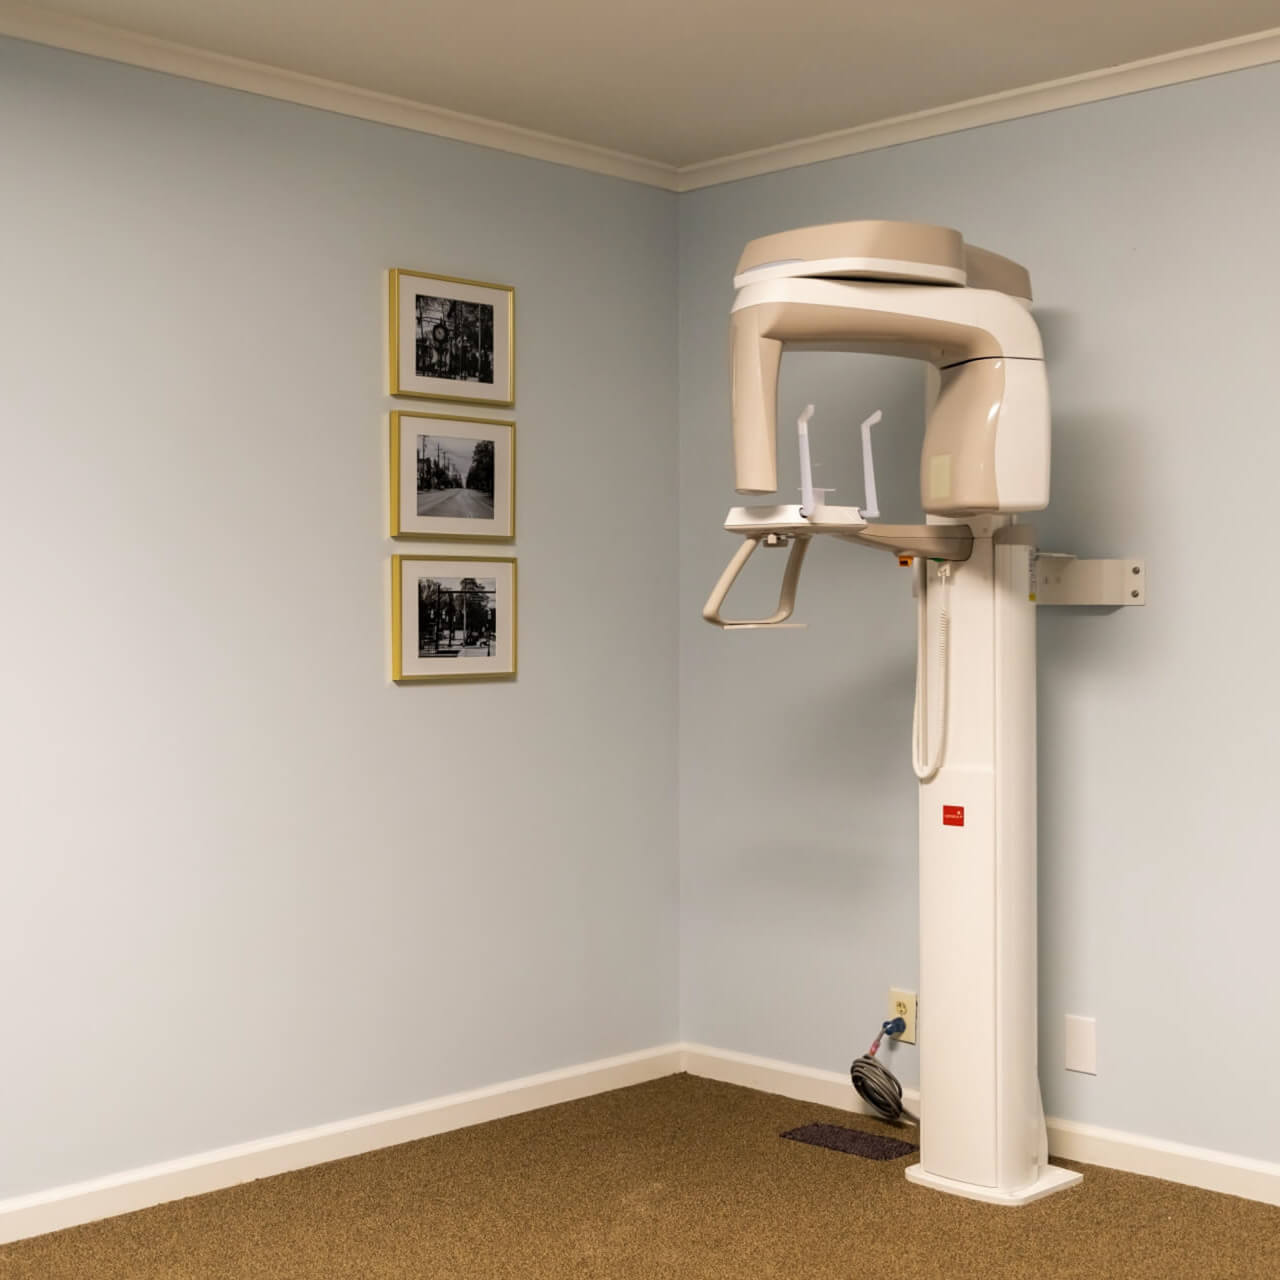 At Pinnacle Dental, we use the iTero scanner to take digital x-rays of your teeth